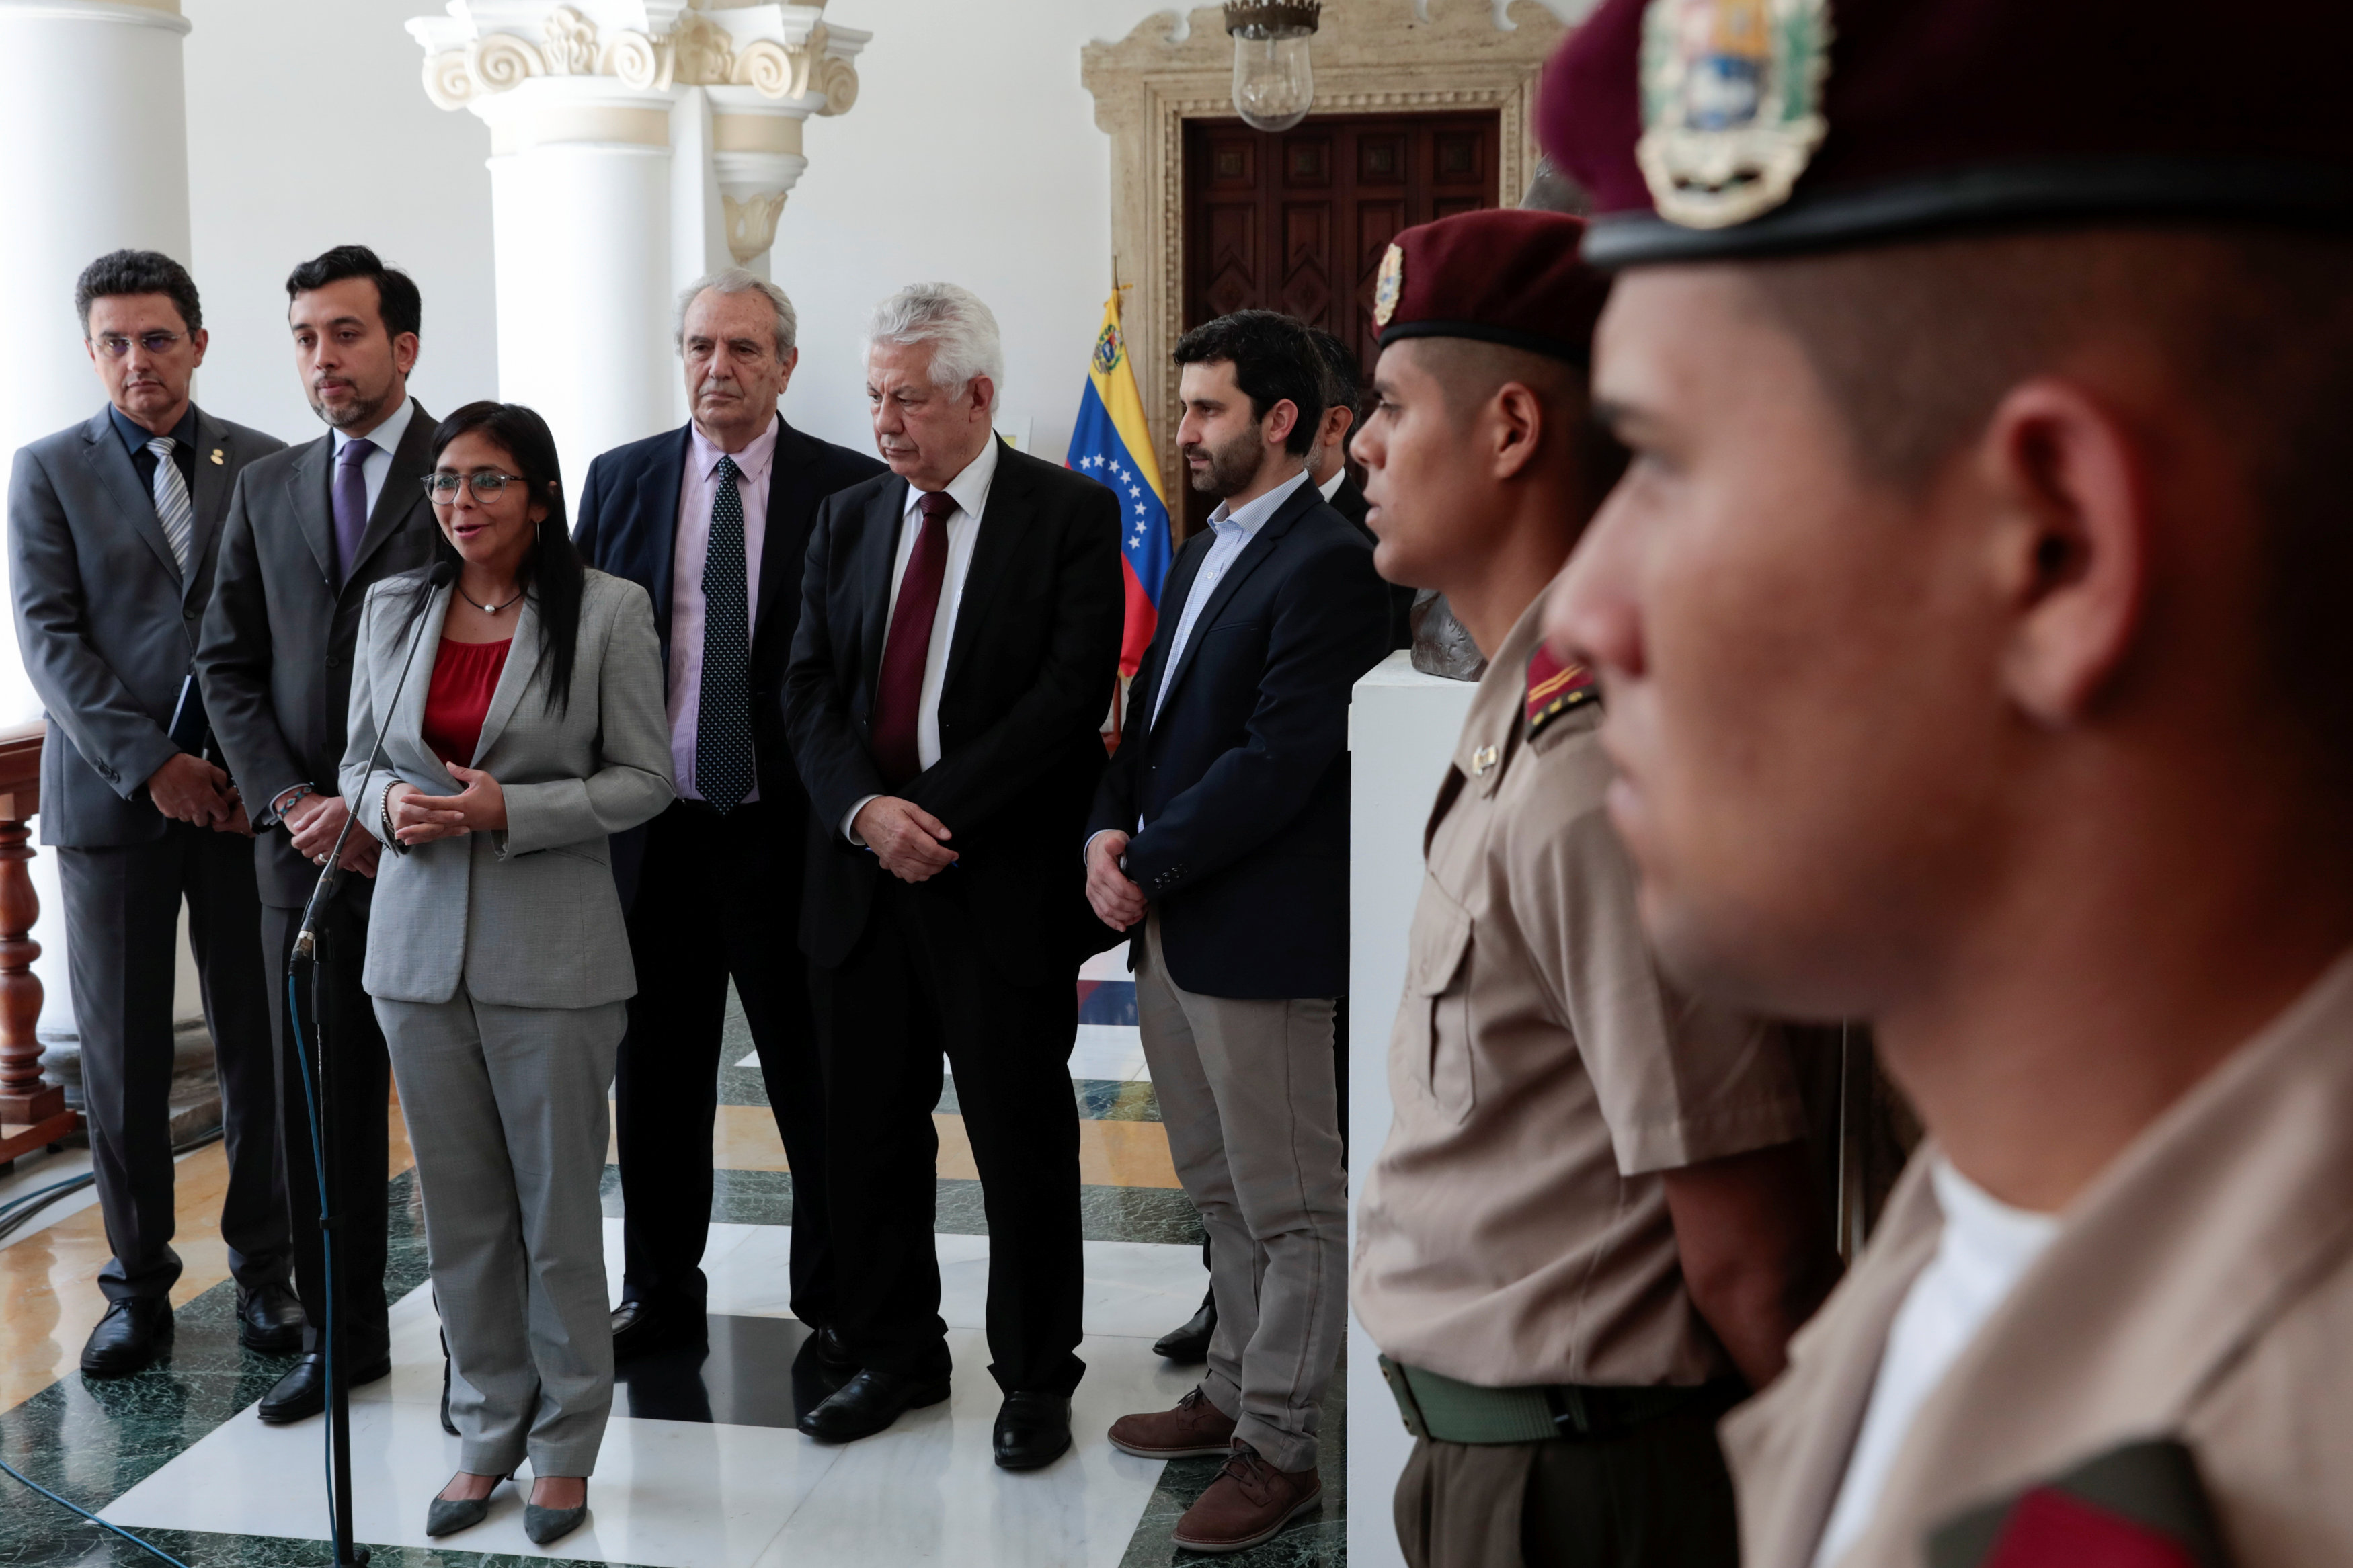 President of Venezuela's National Constituent Assembly Delcy Rodriguez (3-L) talks to the media next to members of the Parlasur, the parliament of the Mercosur trade bloc, after their meeting in Caracas, Venezuela September 15, 2017. REUTERS/Marco Bello